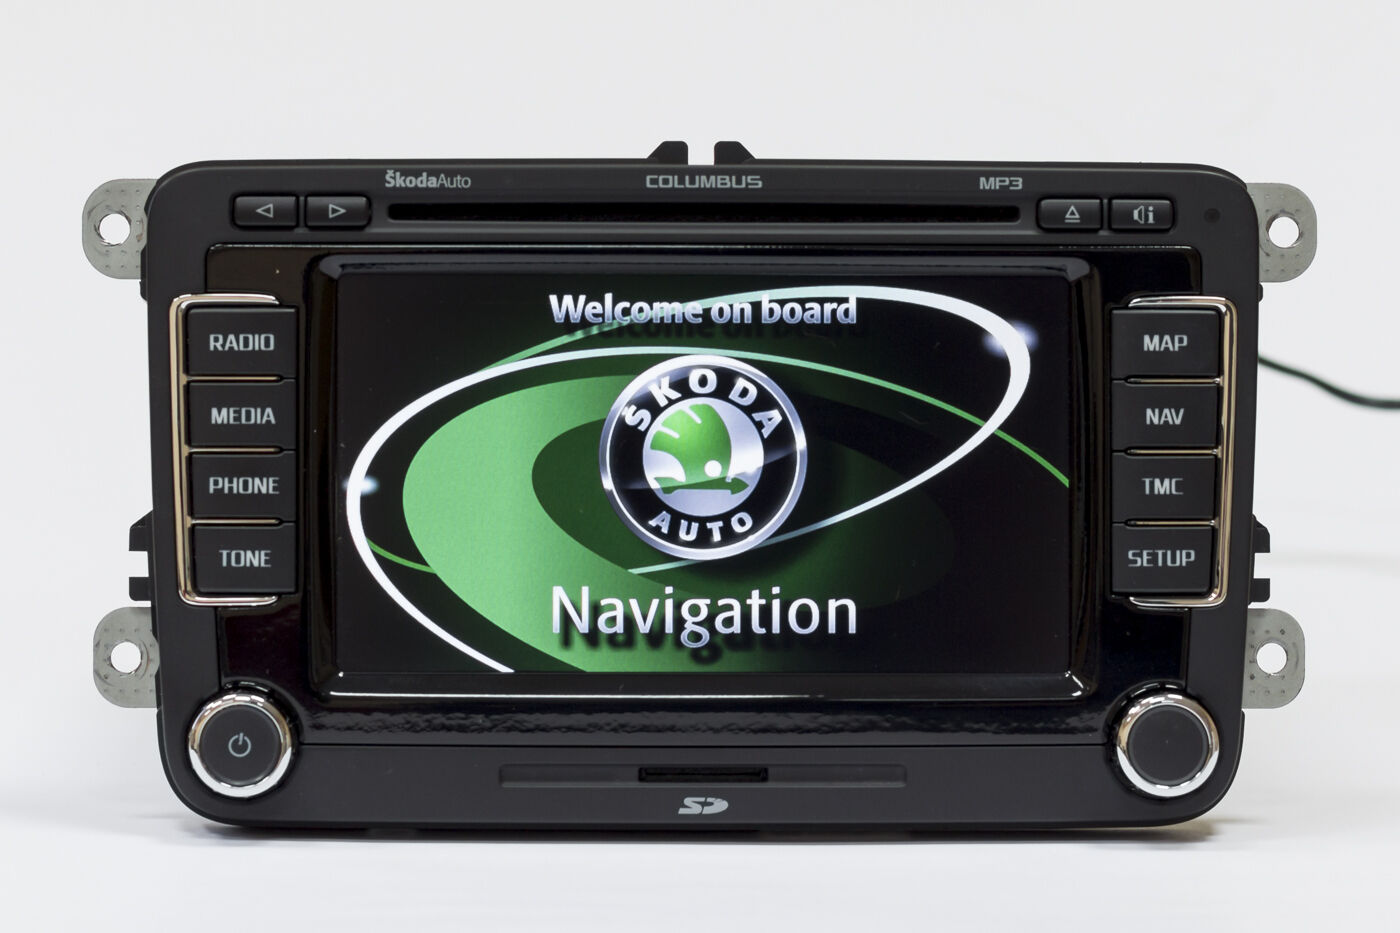 skoda columbus lcd v15 maps rns 510 navigationunit octavia. Black Bedroom Furniture Sets. Home Design Ideas